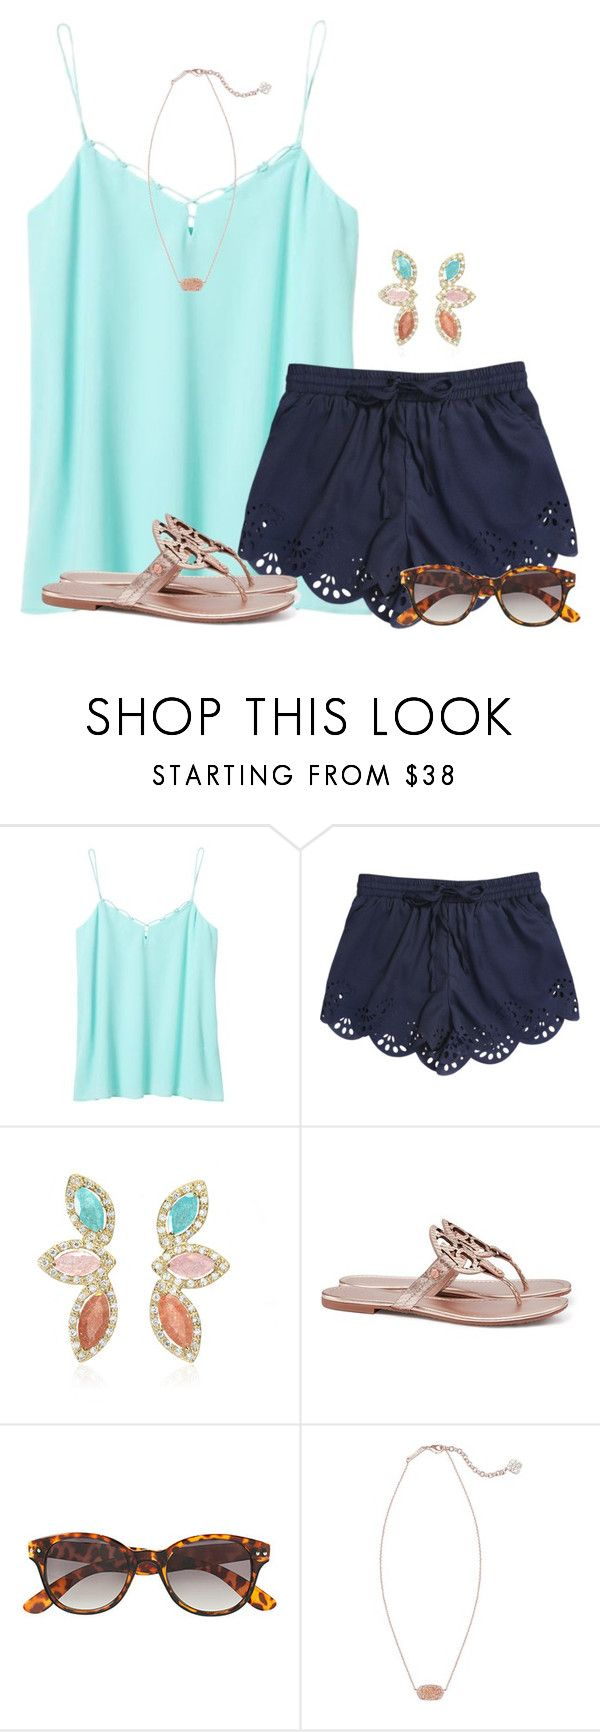 """Light colors:)"" by flroasburn ❤ liked on Polyvore featuring Banana Republic, Tory Burch, H&M and Kendra Scott"